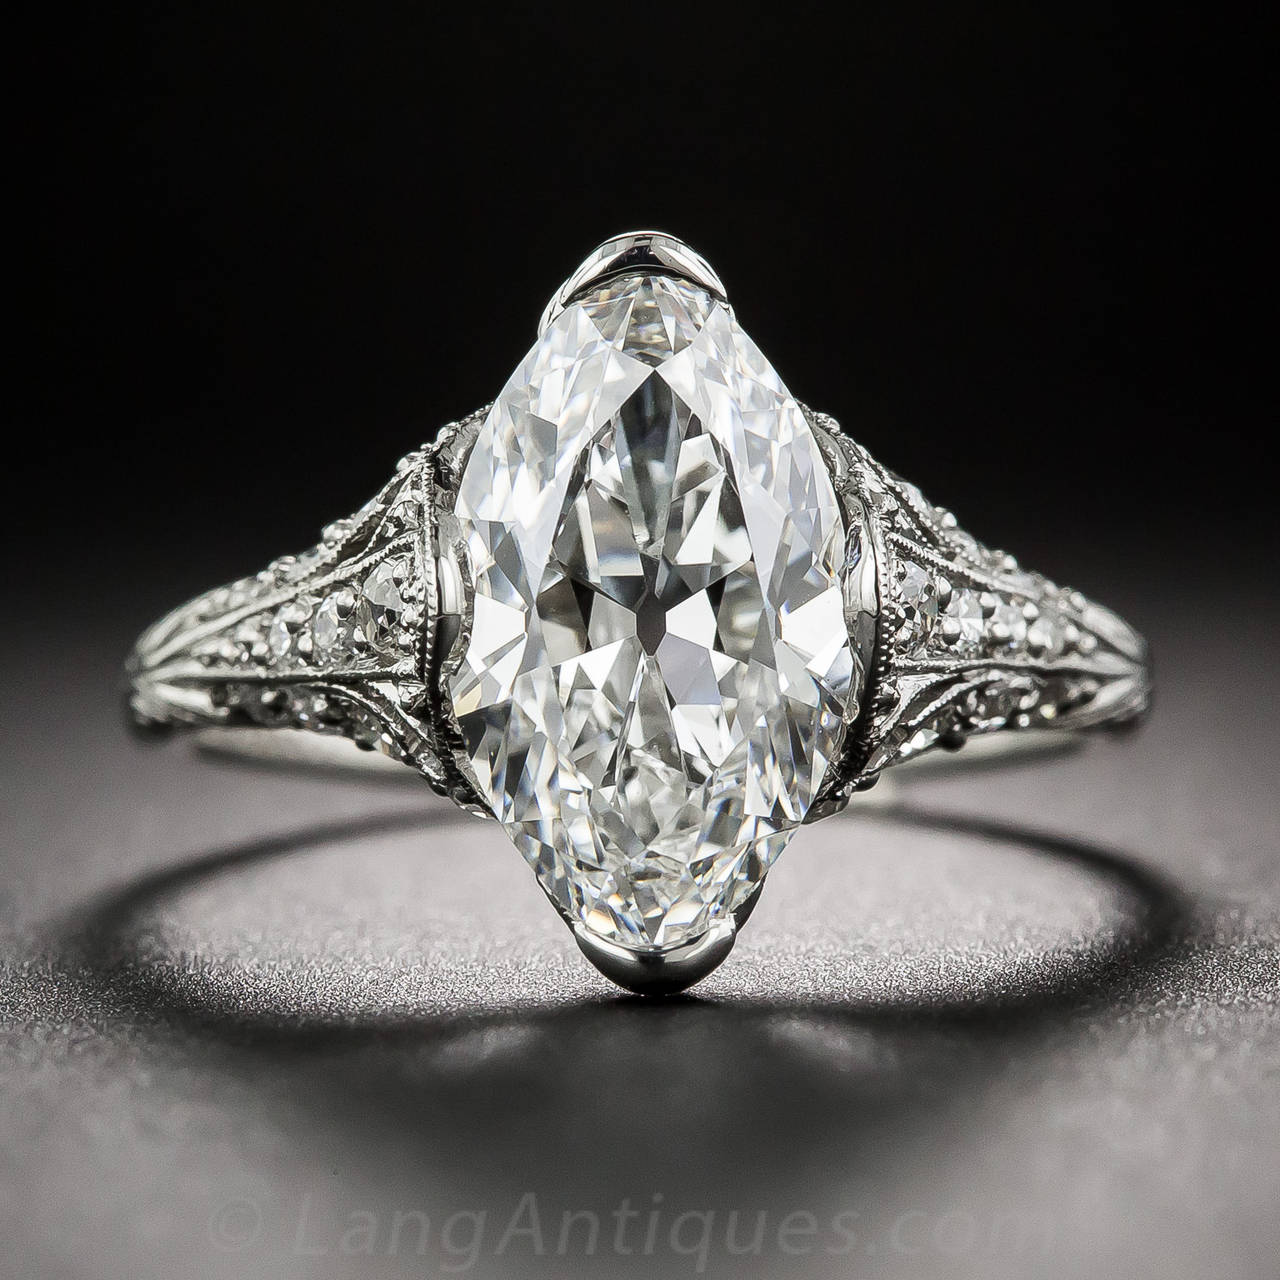 Tiffany & Co. Edwardian 3.14 Carat Marquise Diamond Platinum Ring 2